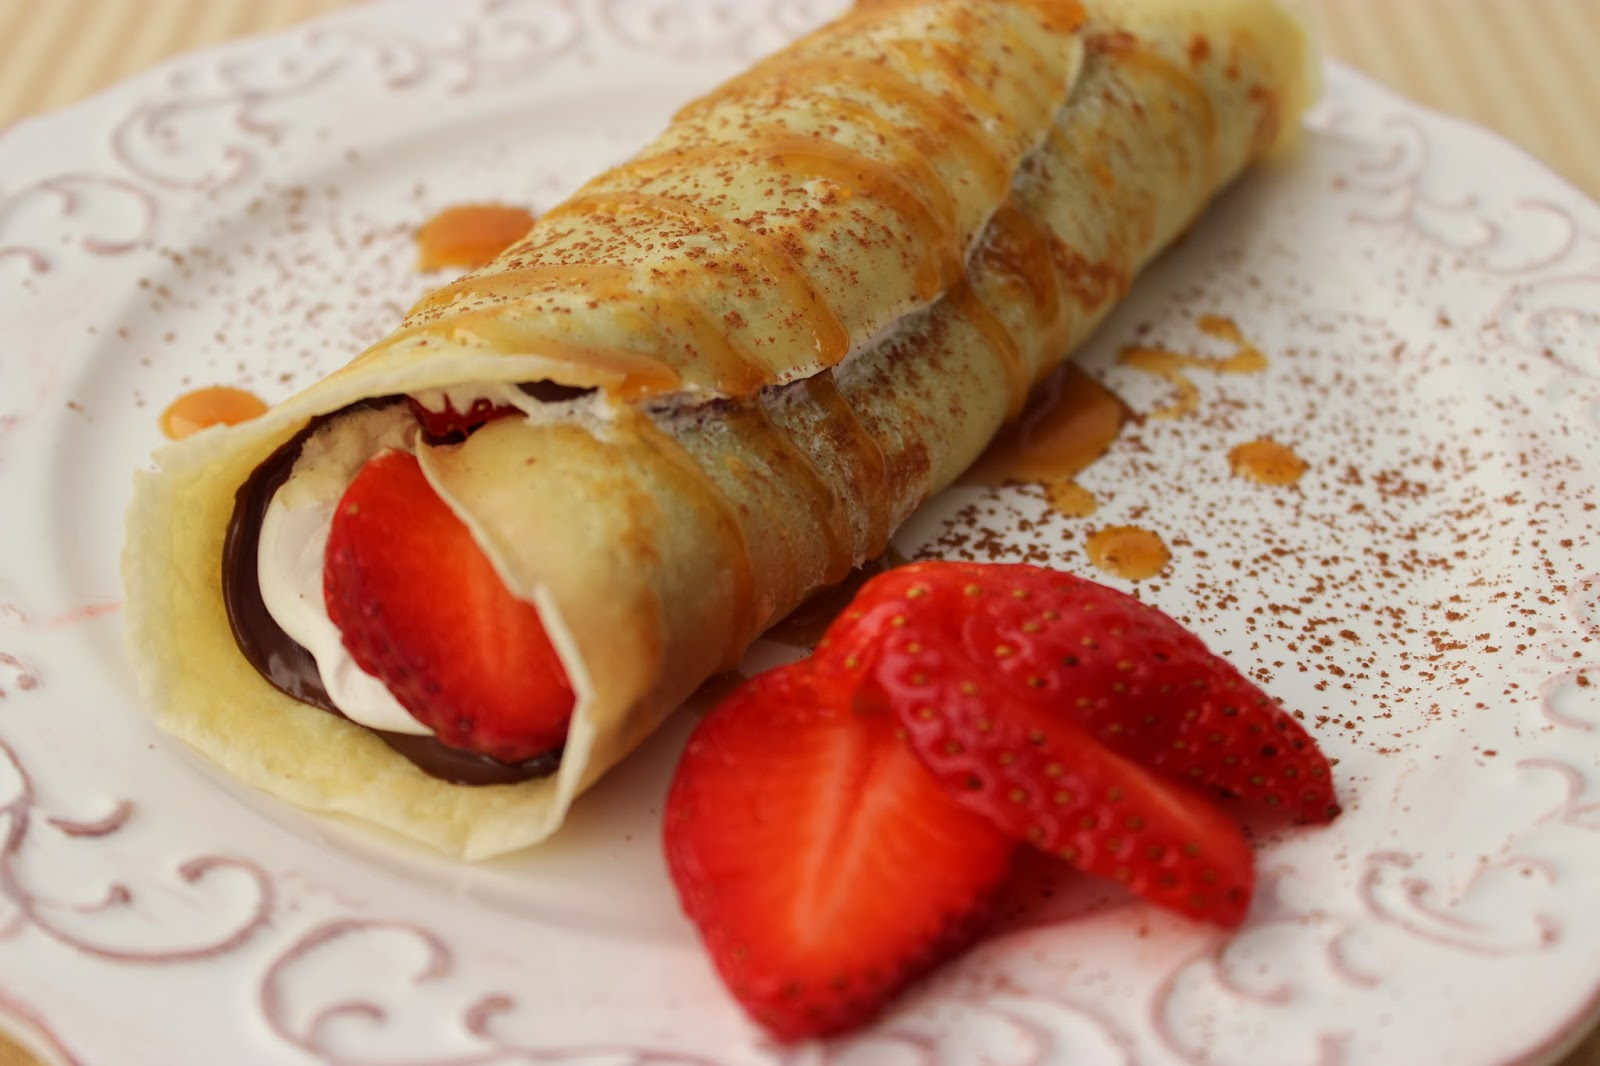 another post from earlier this year strawberry and nutella crepes